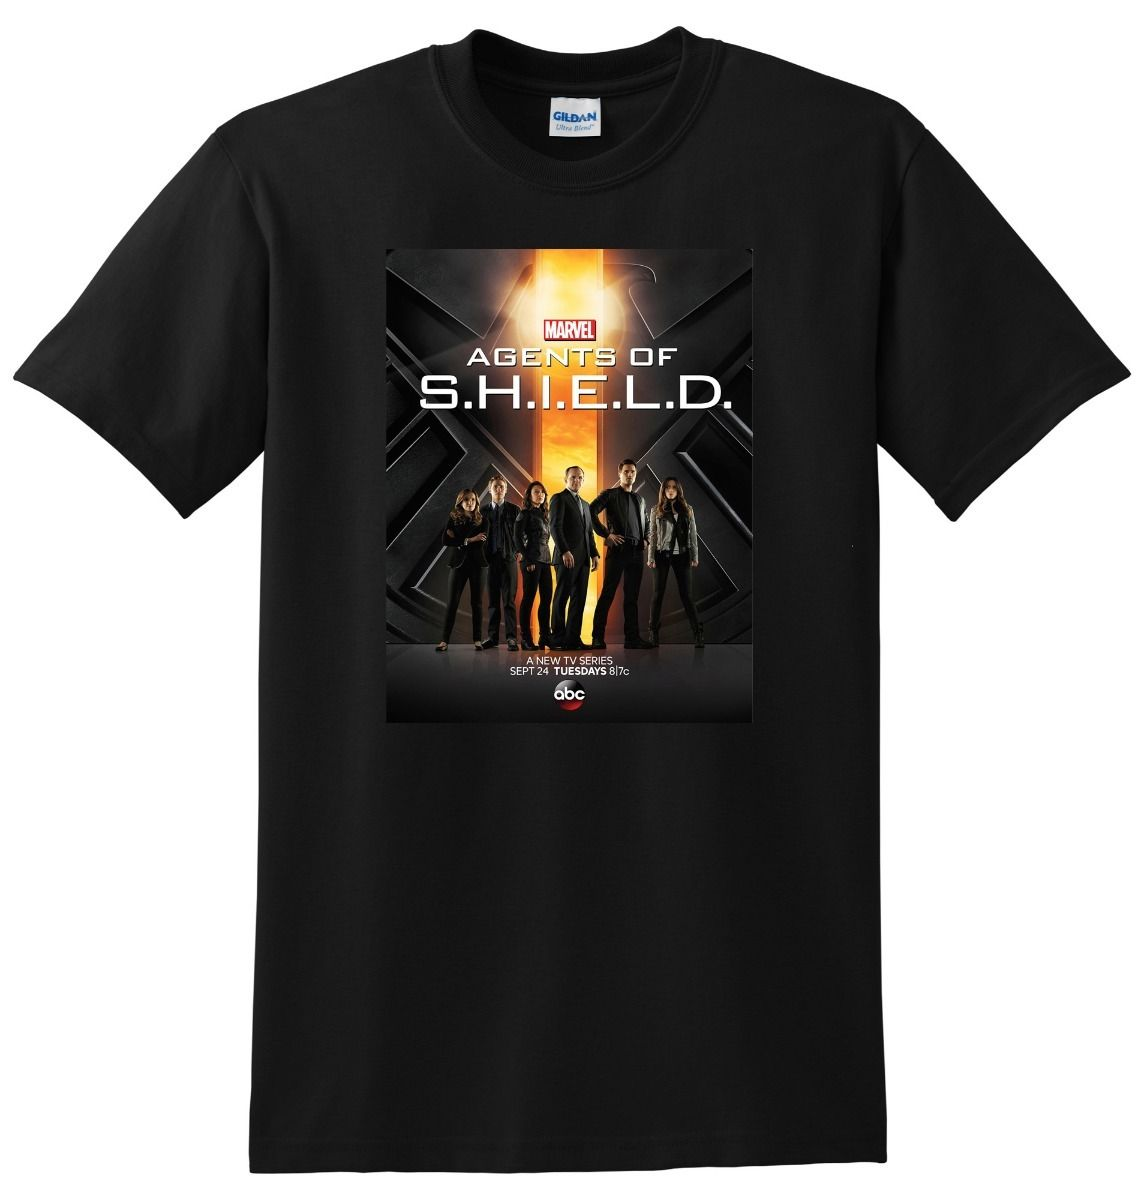 ** Agents Of S.H.I.E.L.D T Shirt Season 1 2 Bluray Dvd Poster S M L Or Xl